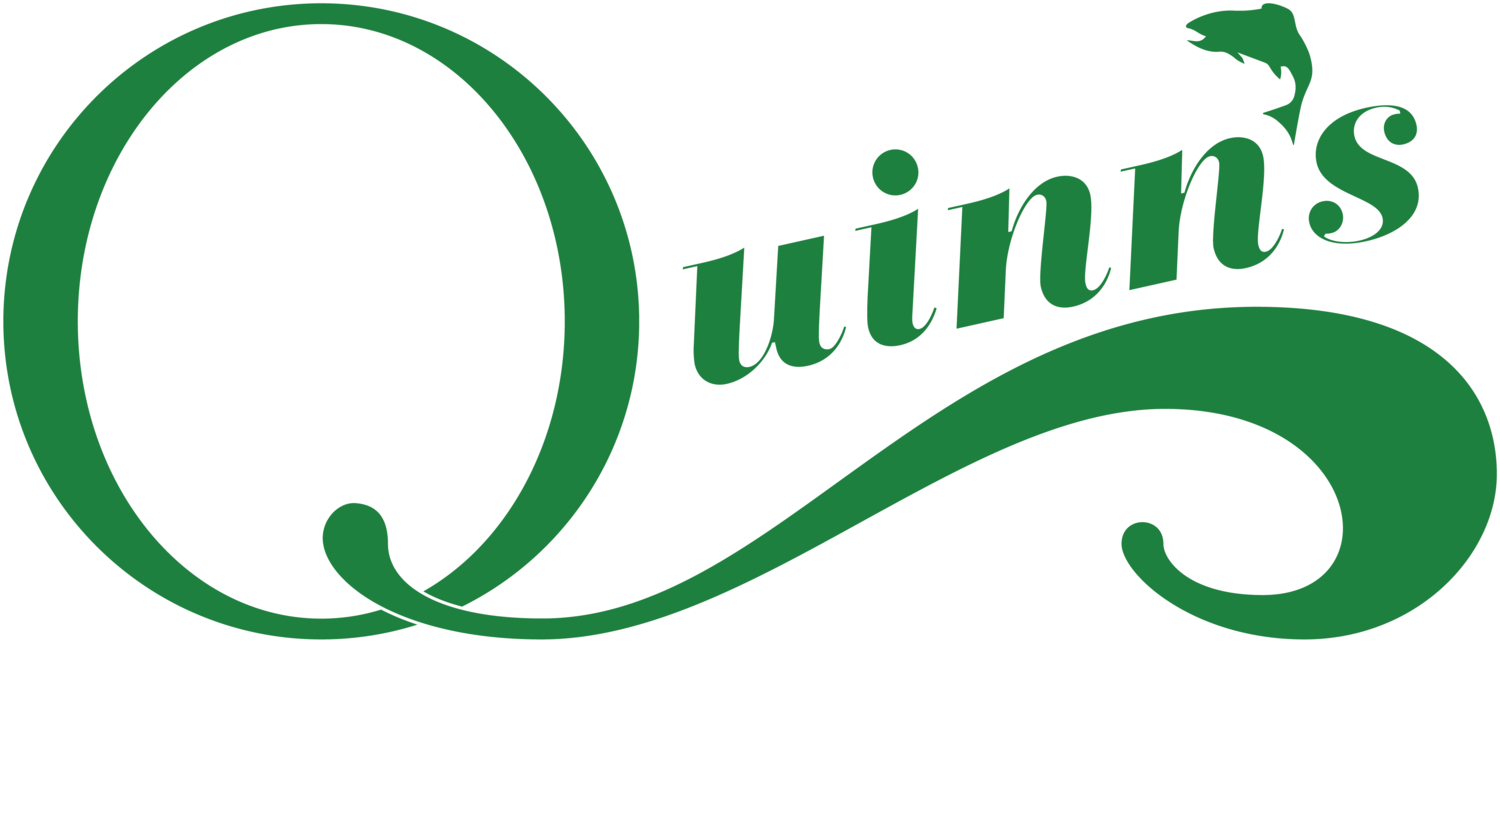 Quinn's Hot Springs Resort